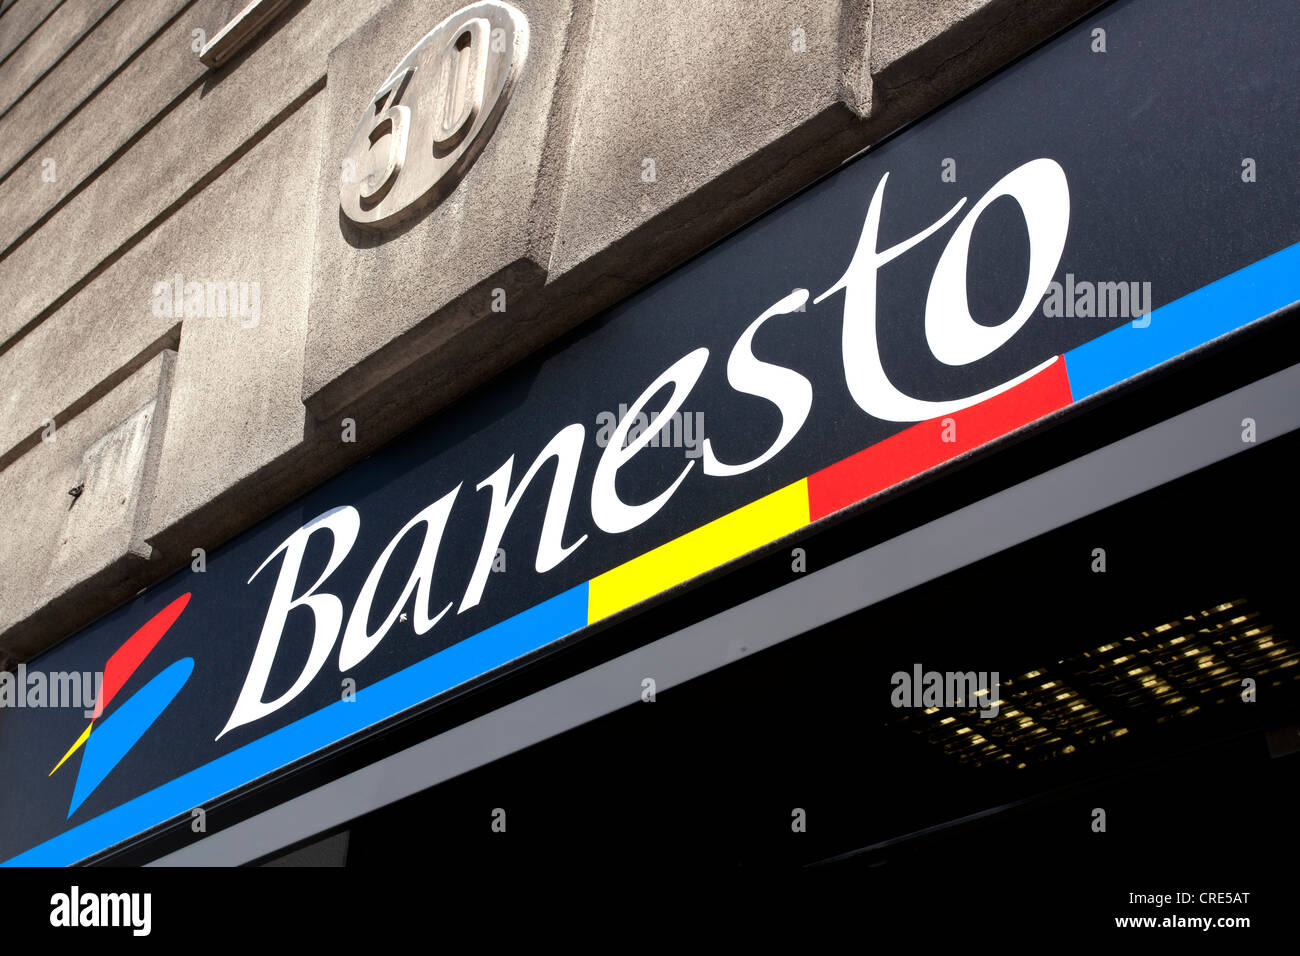 Logo and the Spanish bank Banesto, Banco Espanol de Credito, Madrid, Spain, Europe - Stock Image